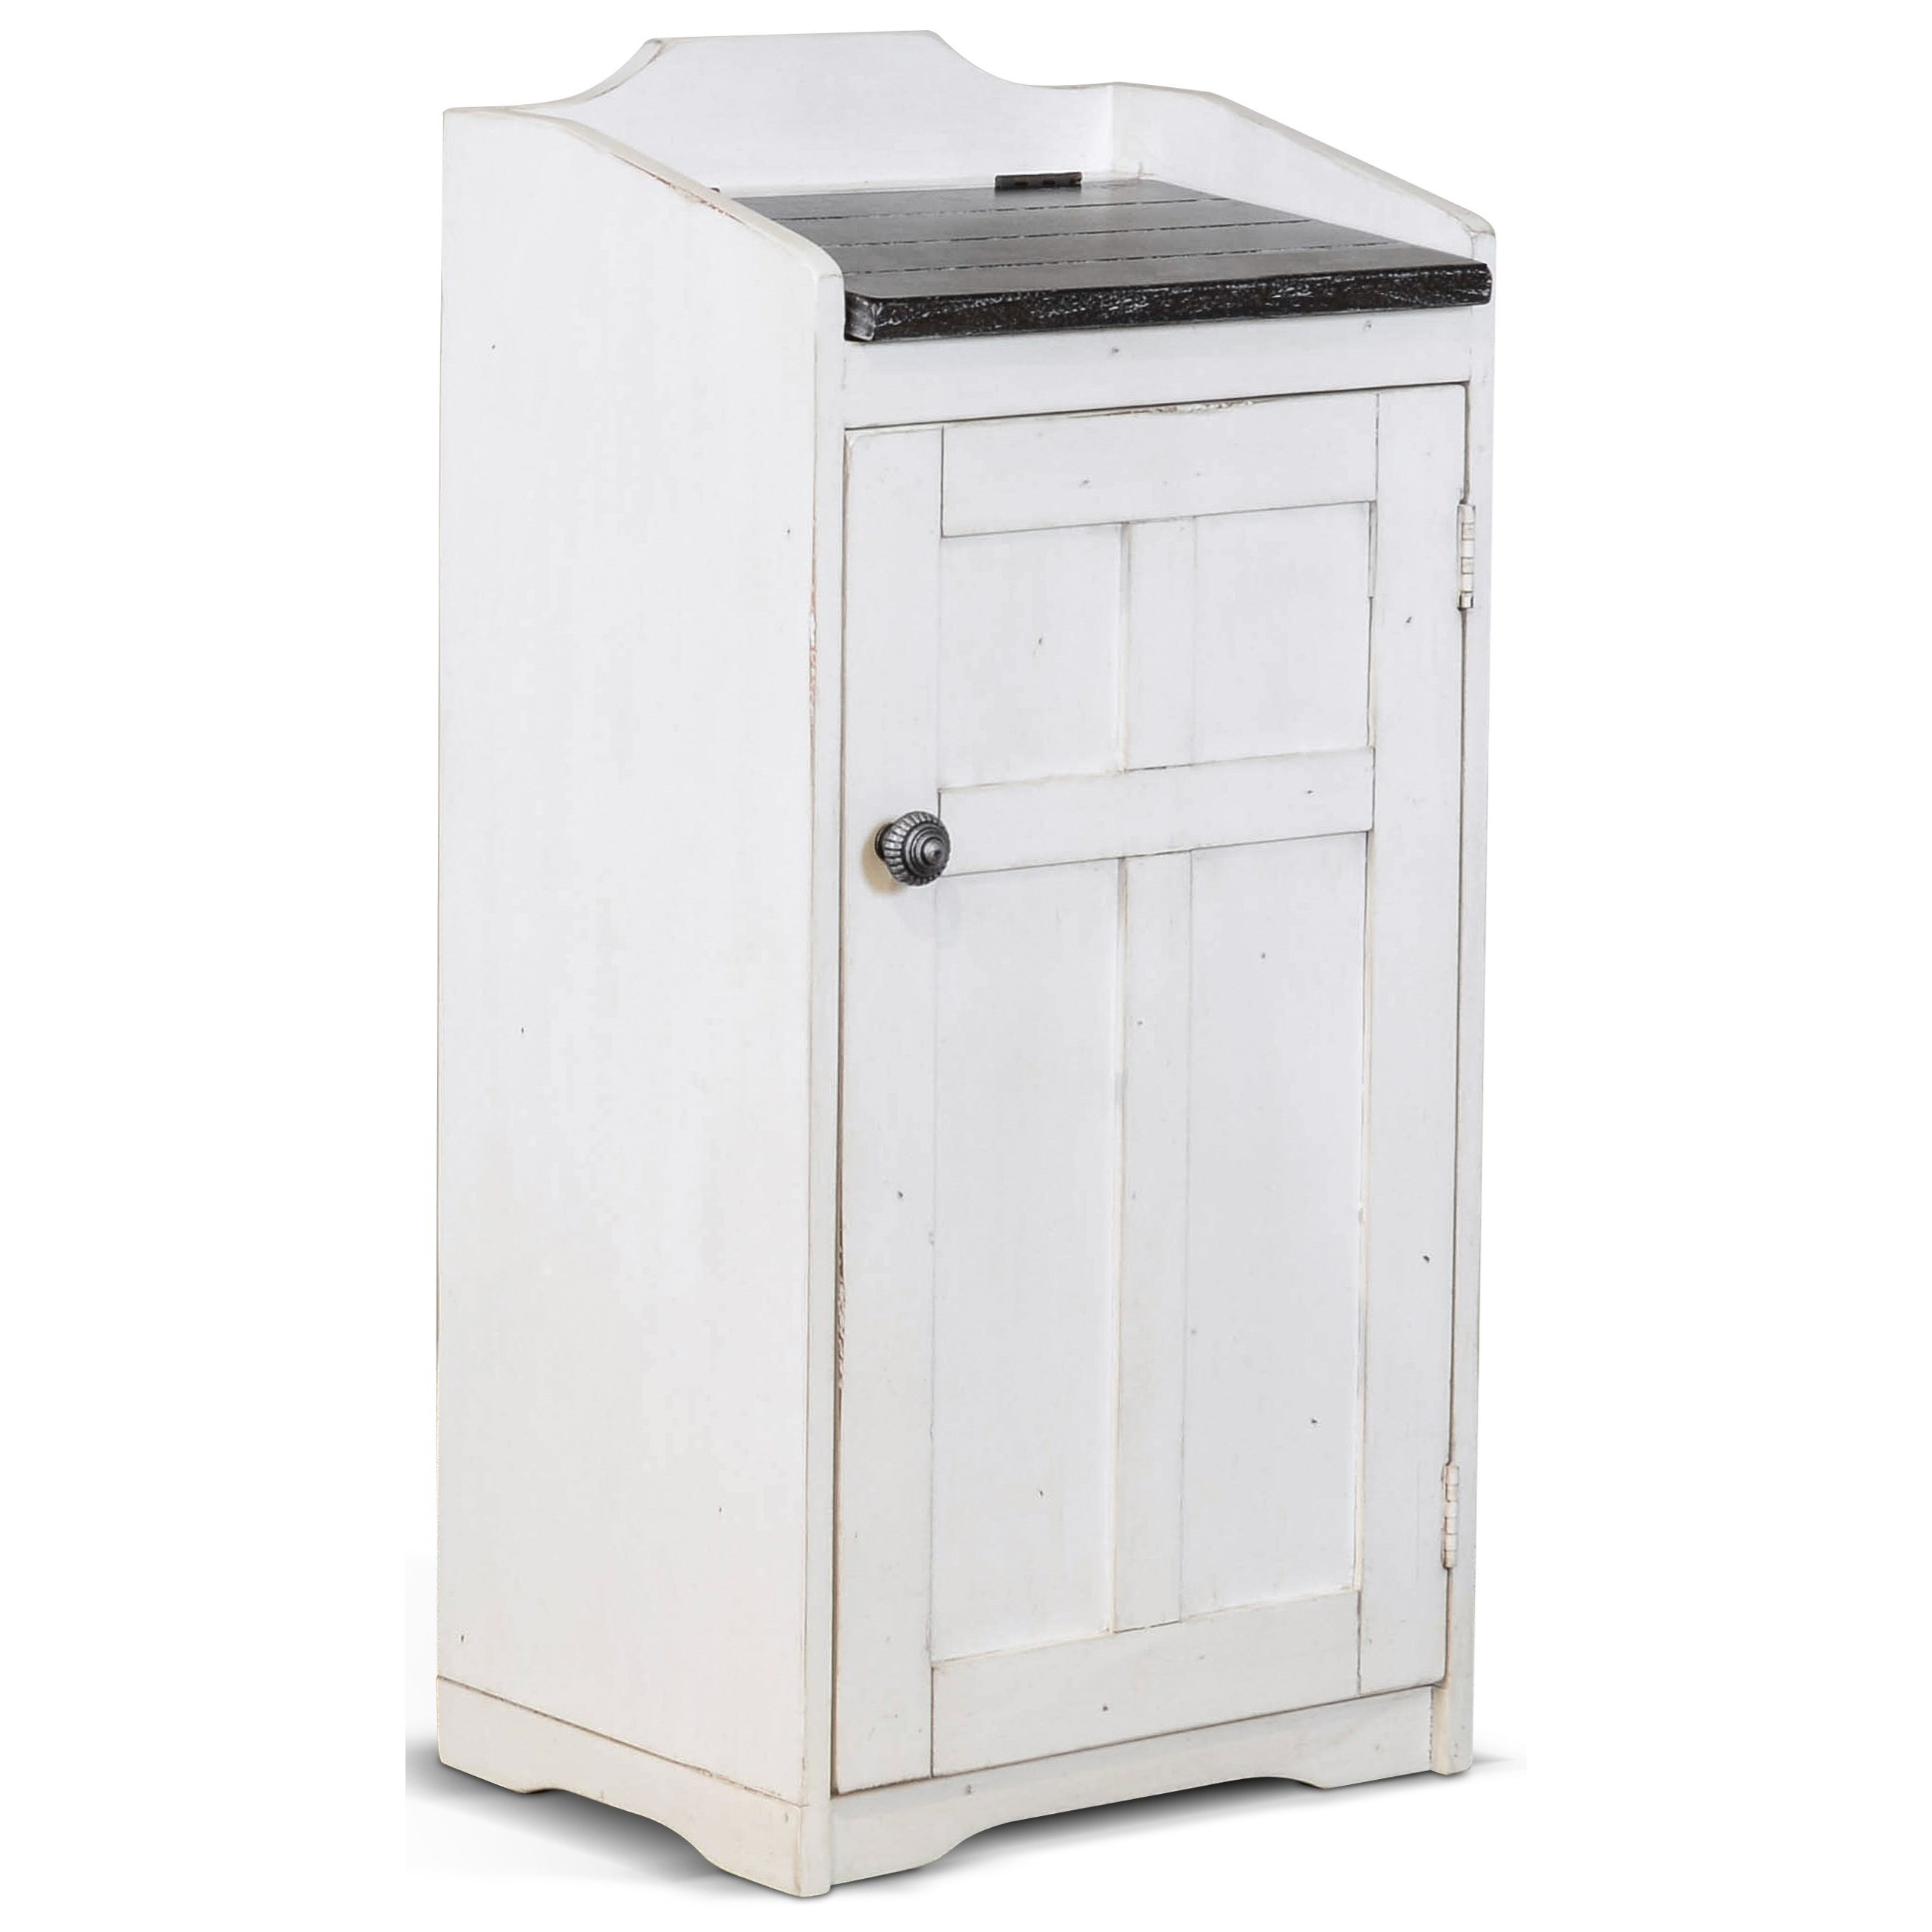 Carriage House Trash Box by Sunny Designs at Sparks HomeStore